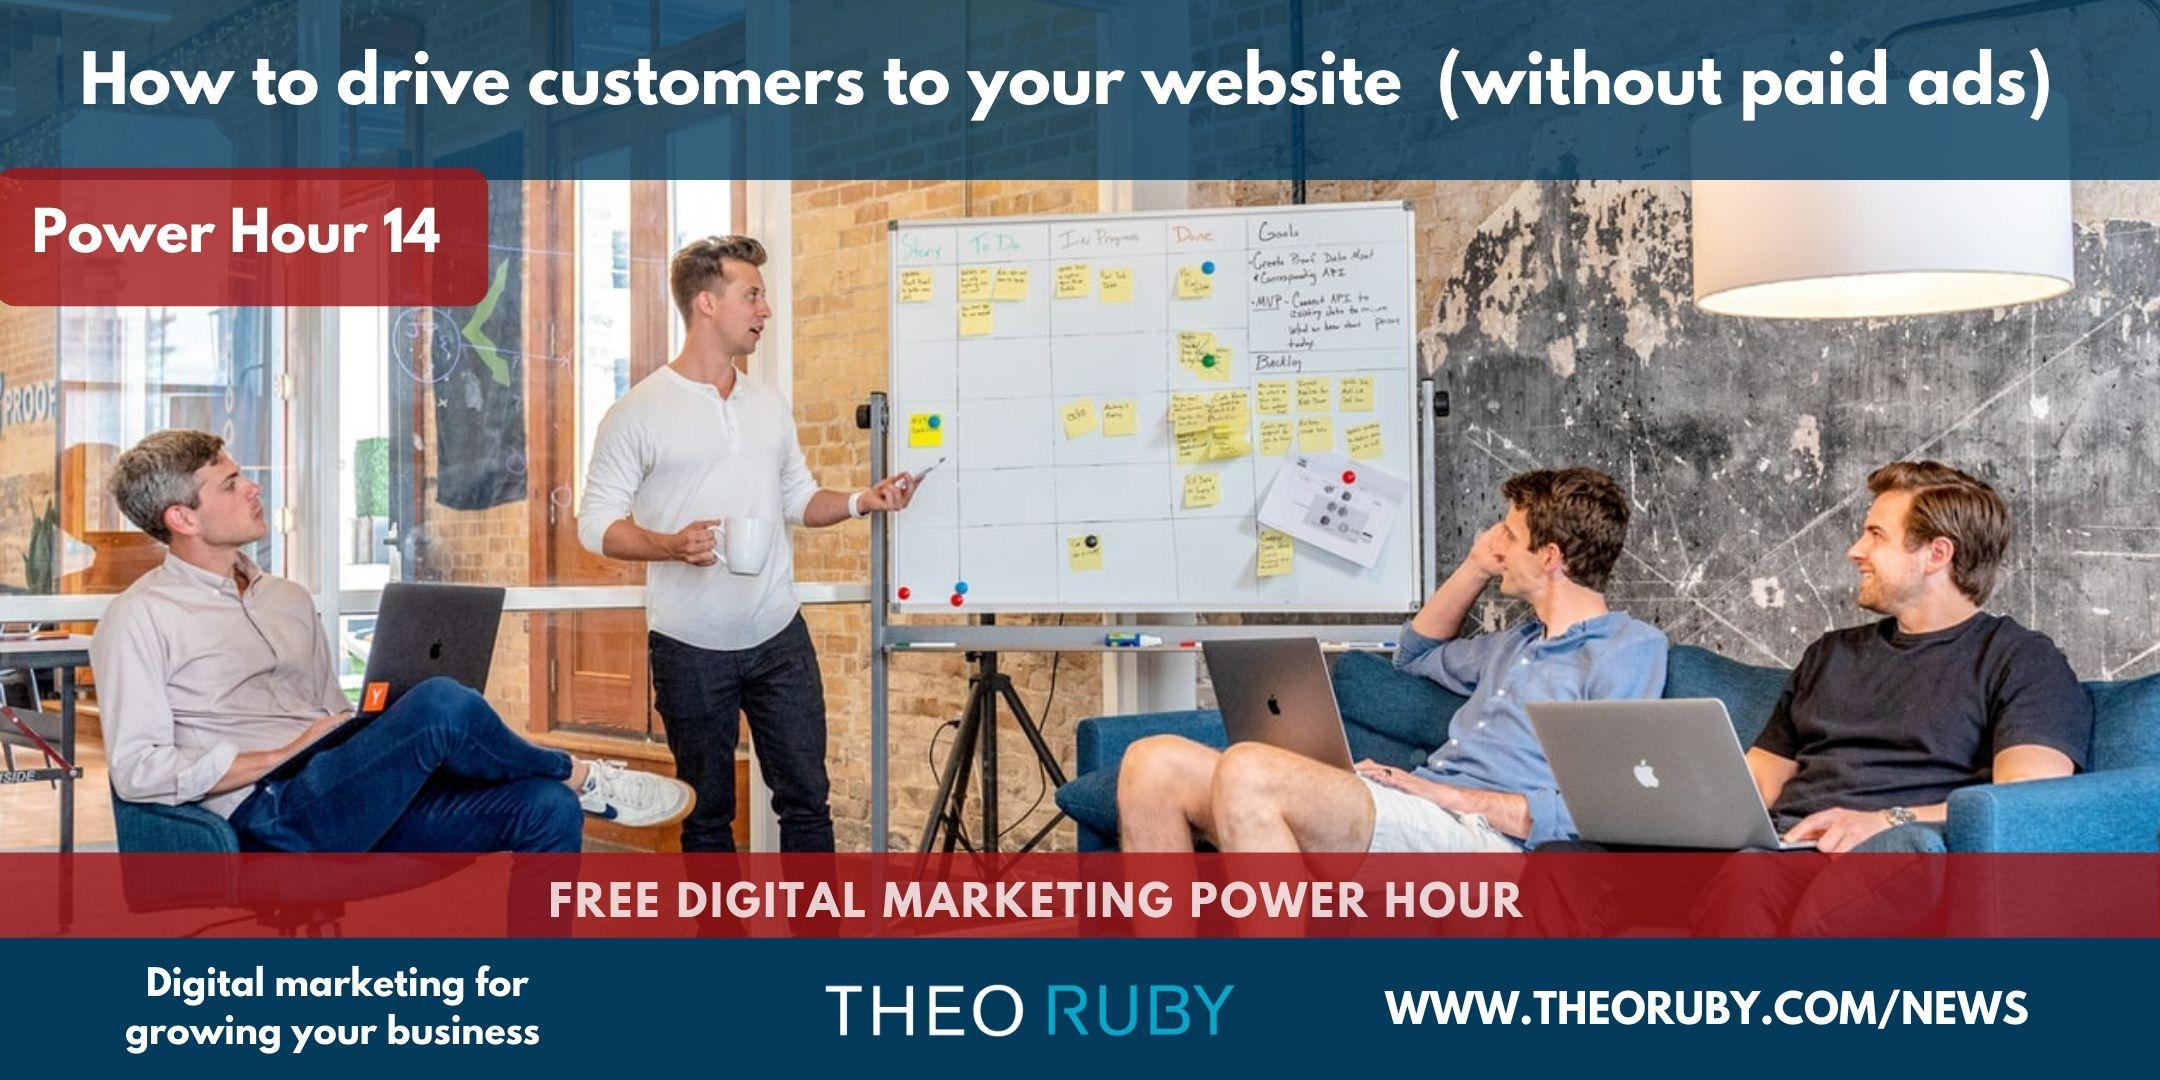 Power Hour 14 | How to drive customers to your website (without paid ads) 2